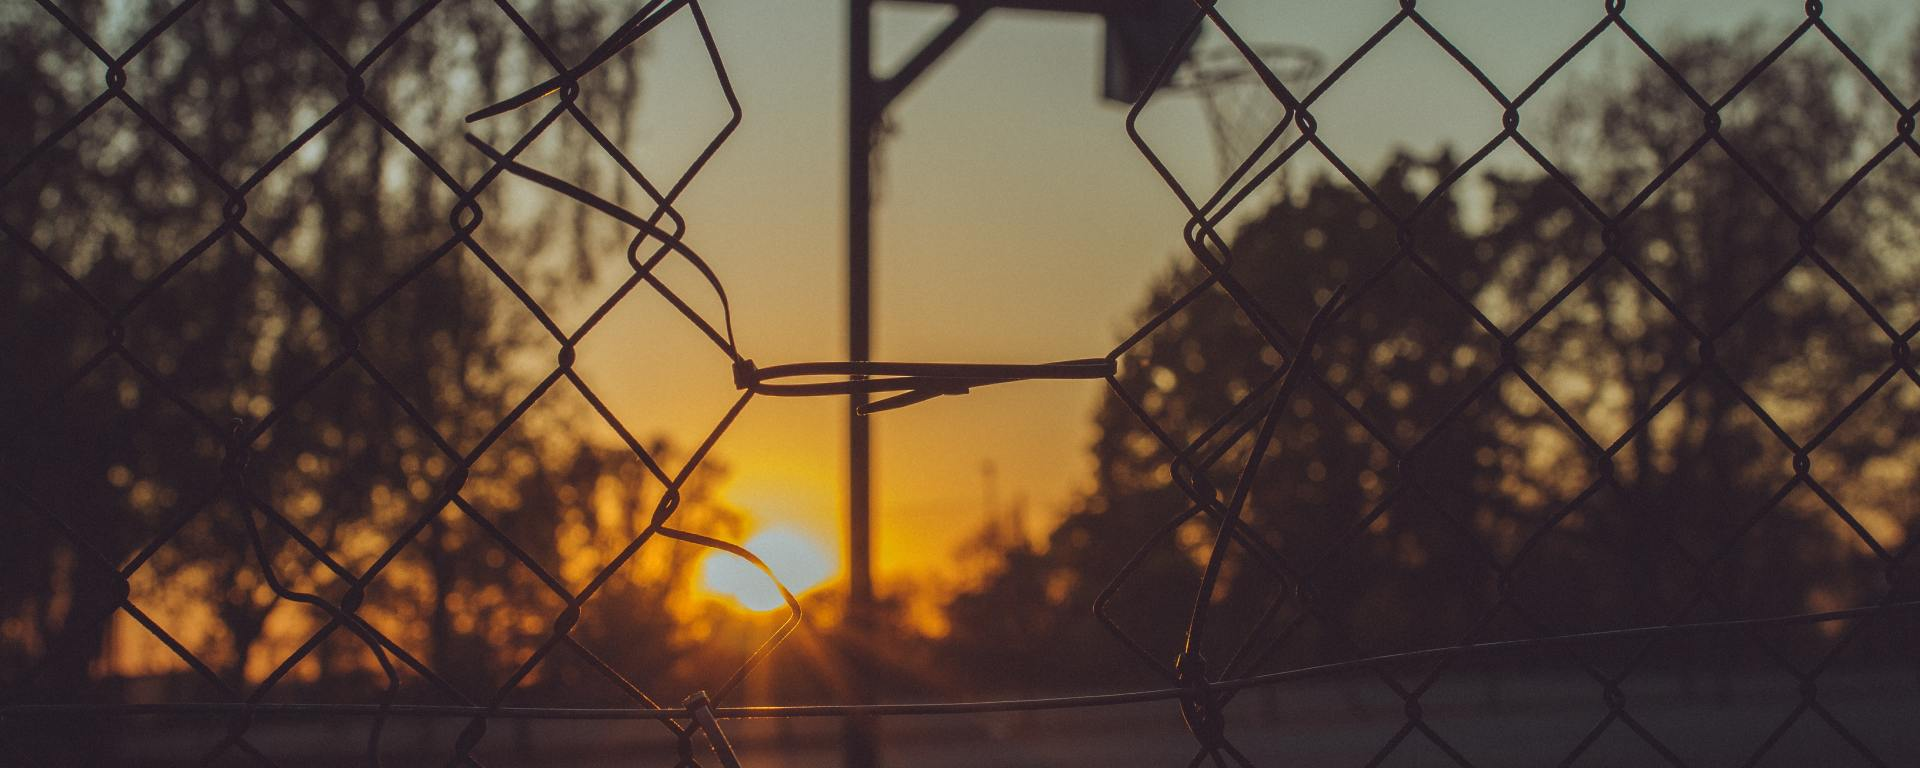 An image of a basketball court and sunset beyond a chain link fence.